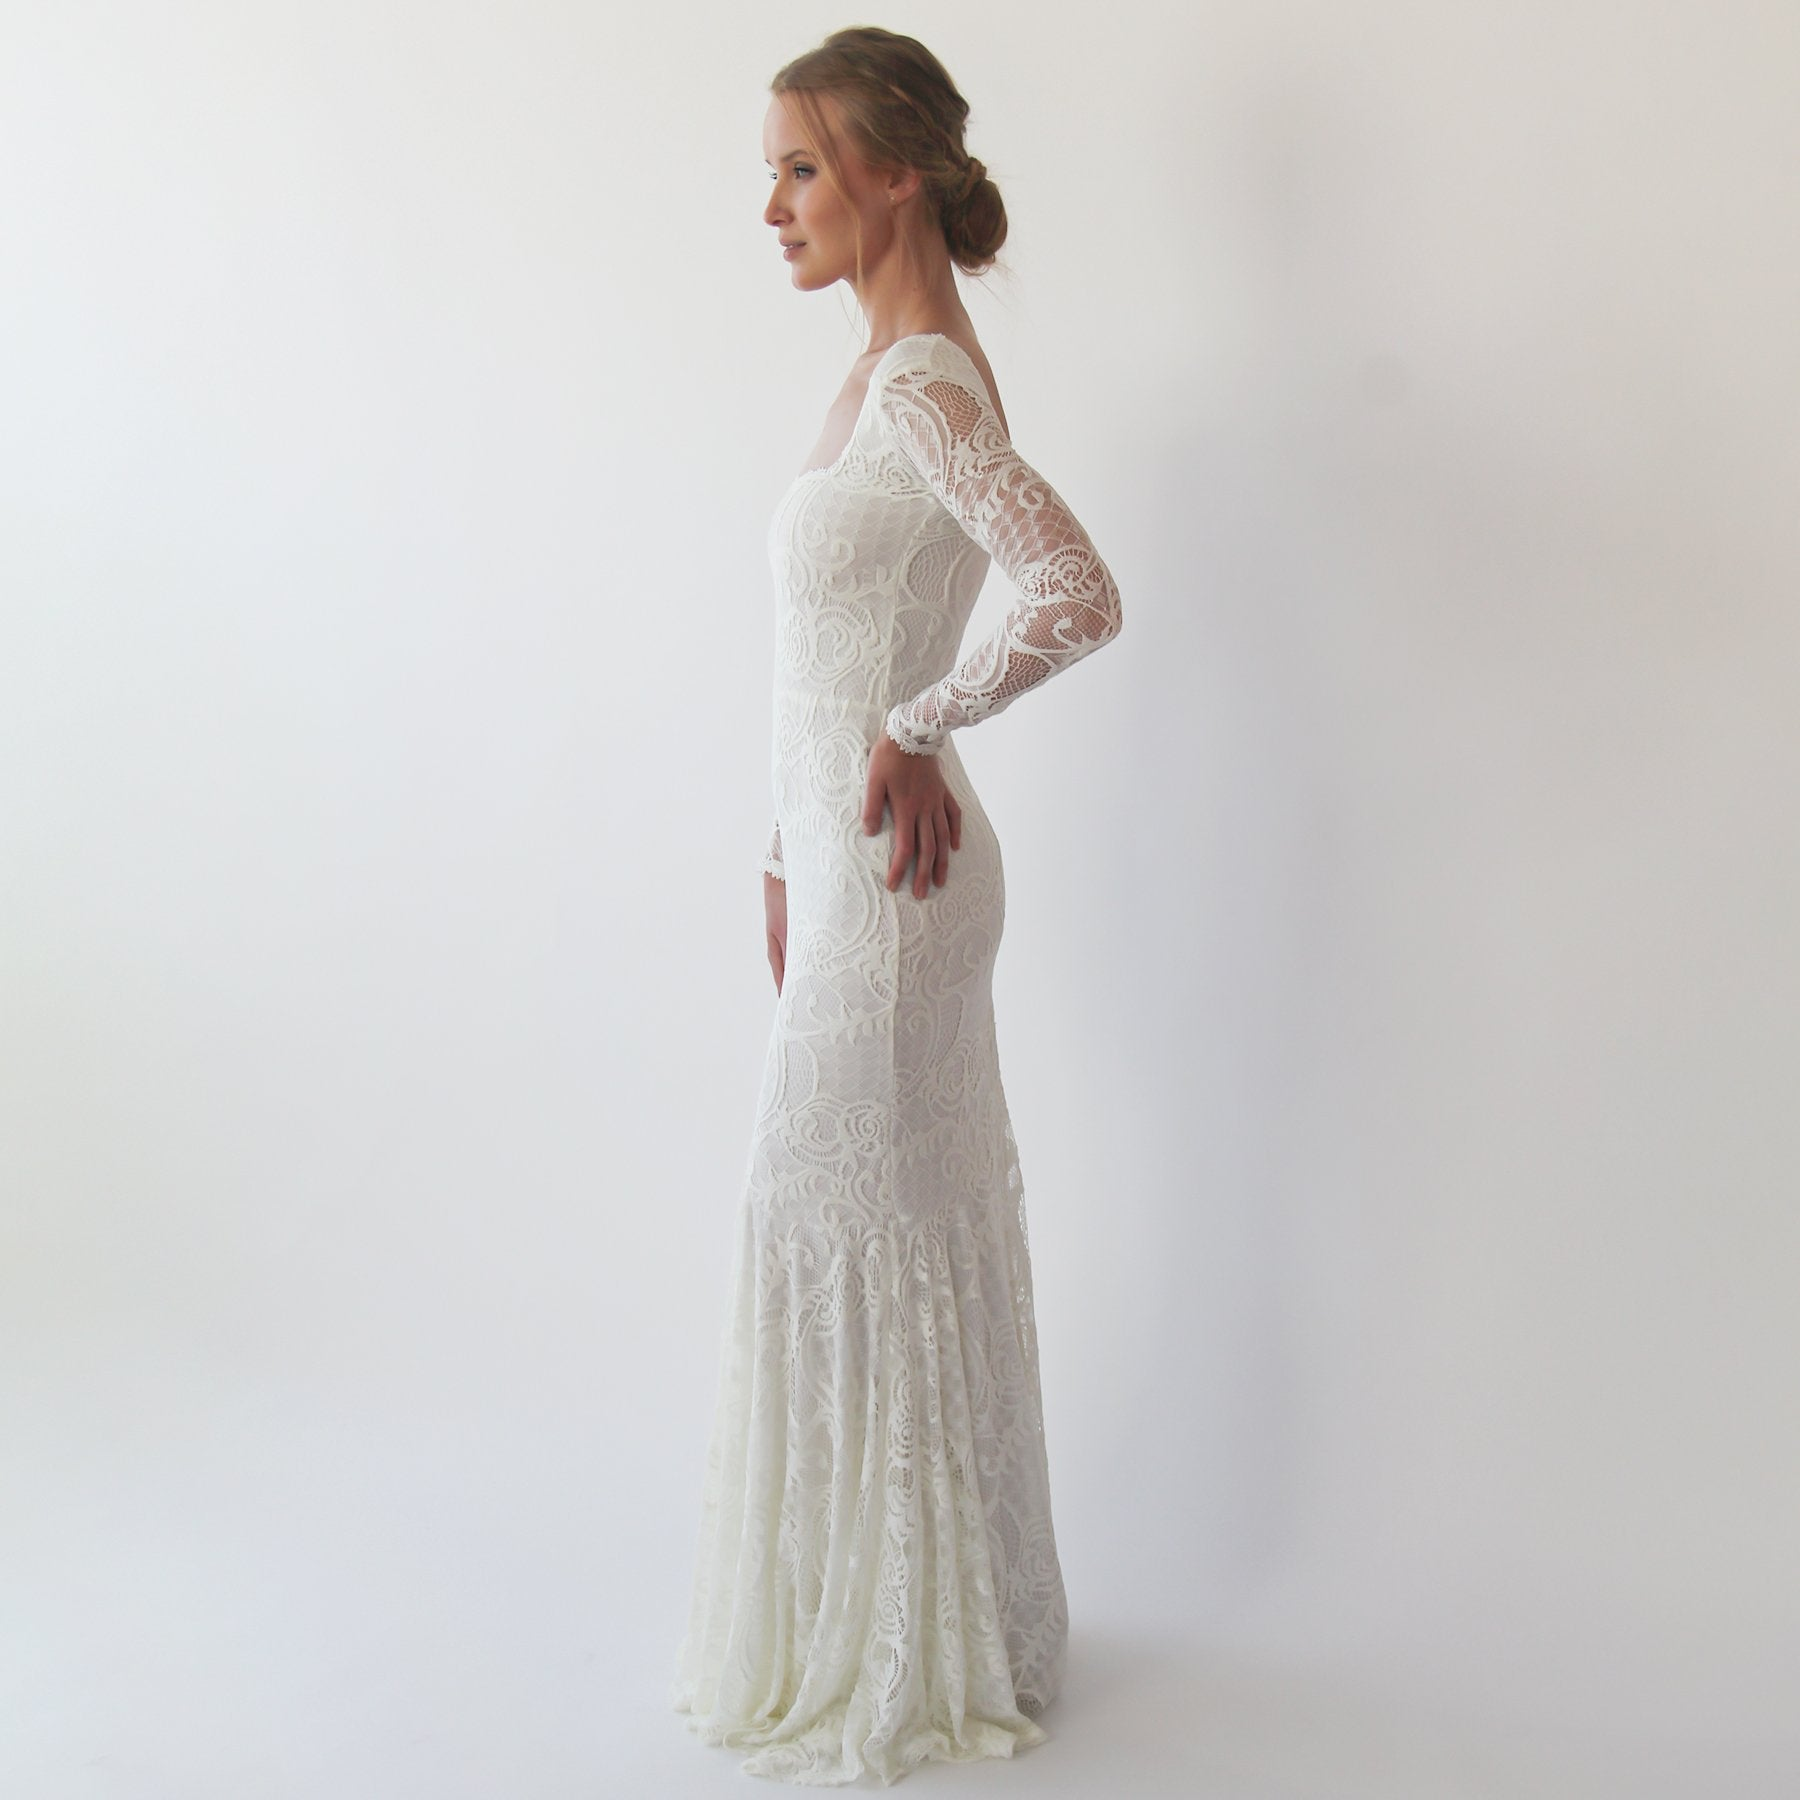 Mermaid lace wedding dress with square neckline , vintage inspired ,bohemian wedding dress, Ivory lace long sleeves dress 1245